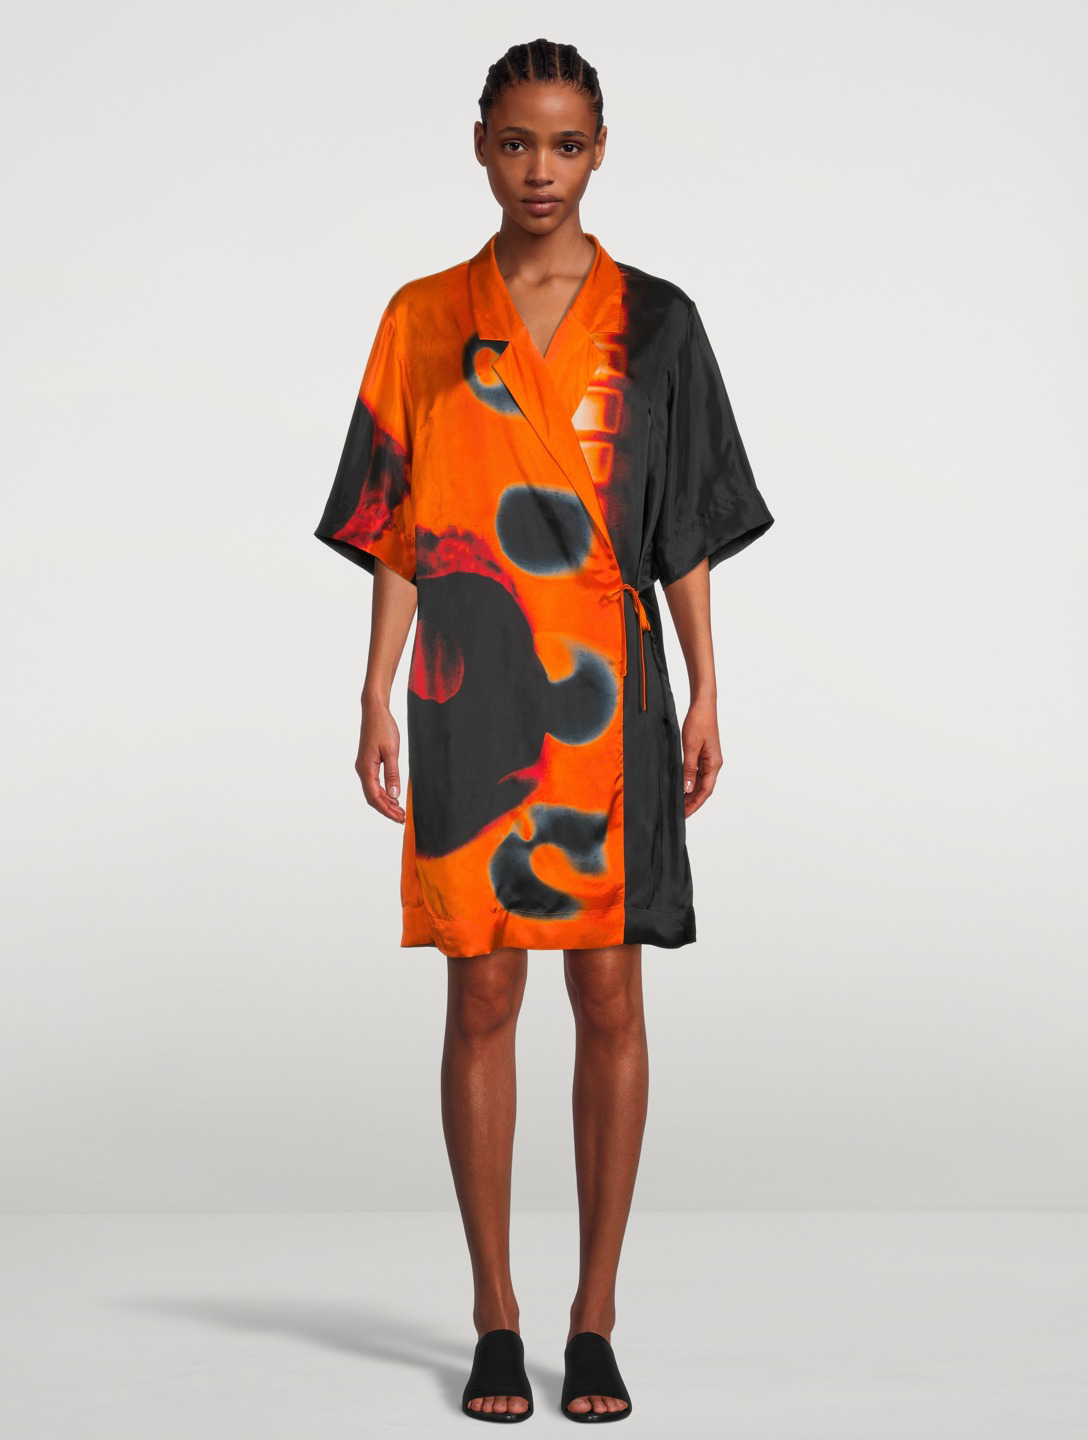 DRIES VAN NOTEN Calta Short-Sleeve Wrap Dress Women's Orange